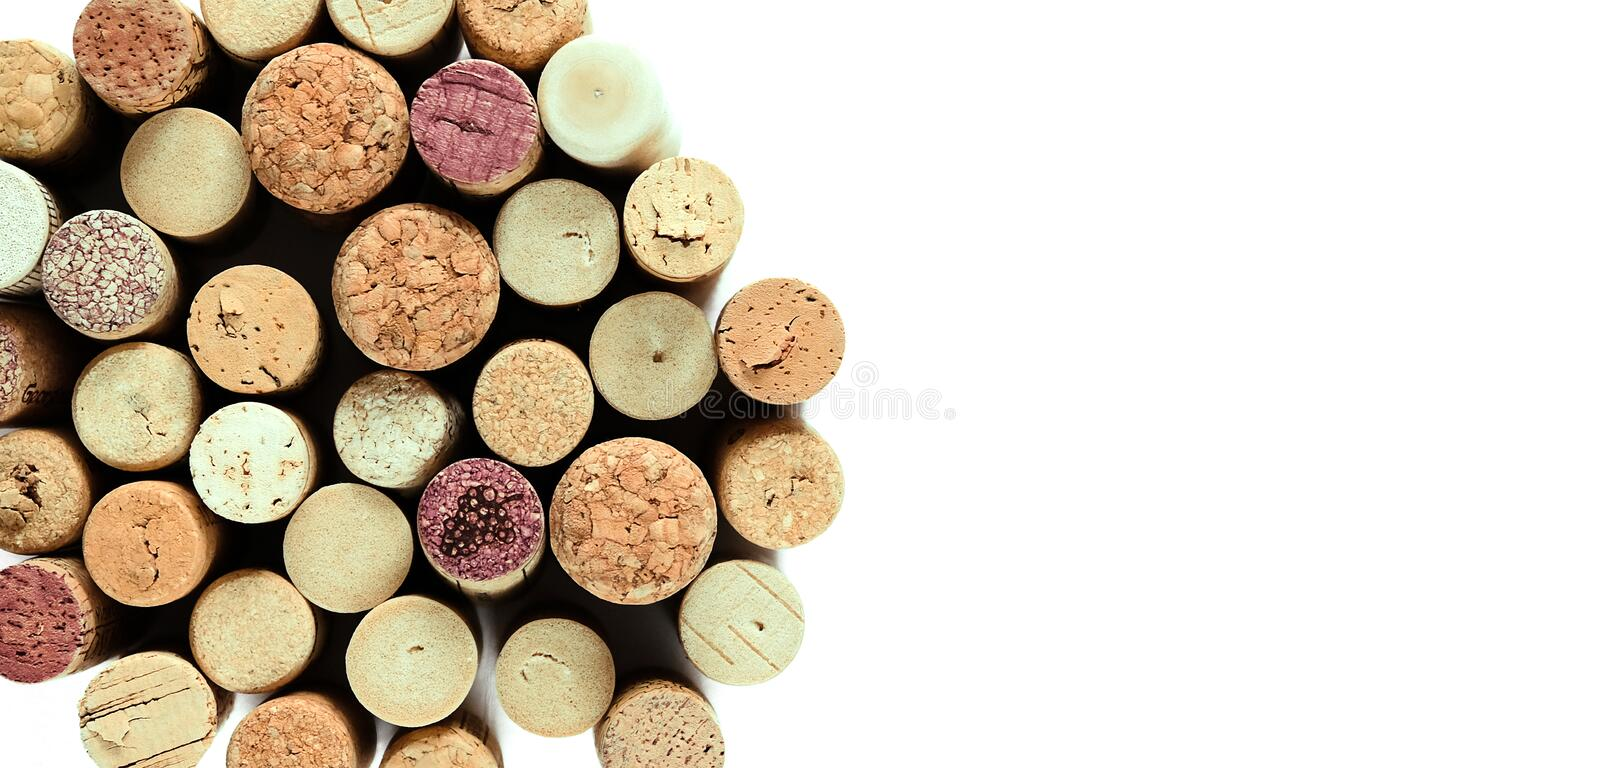 Wine corks background isolated on white with the place for text stock images